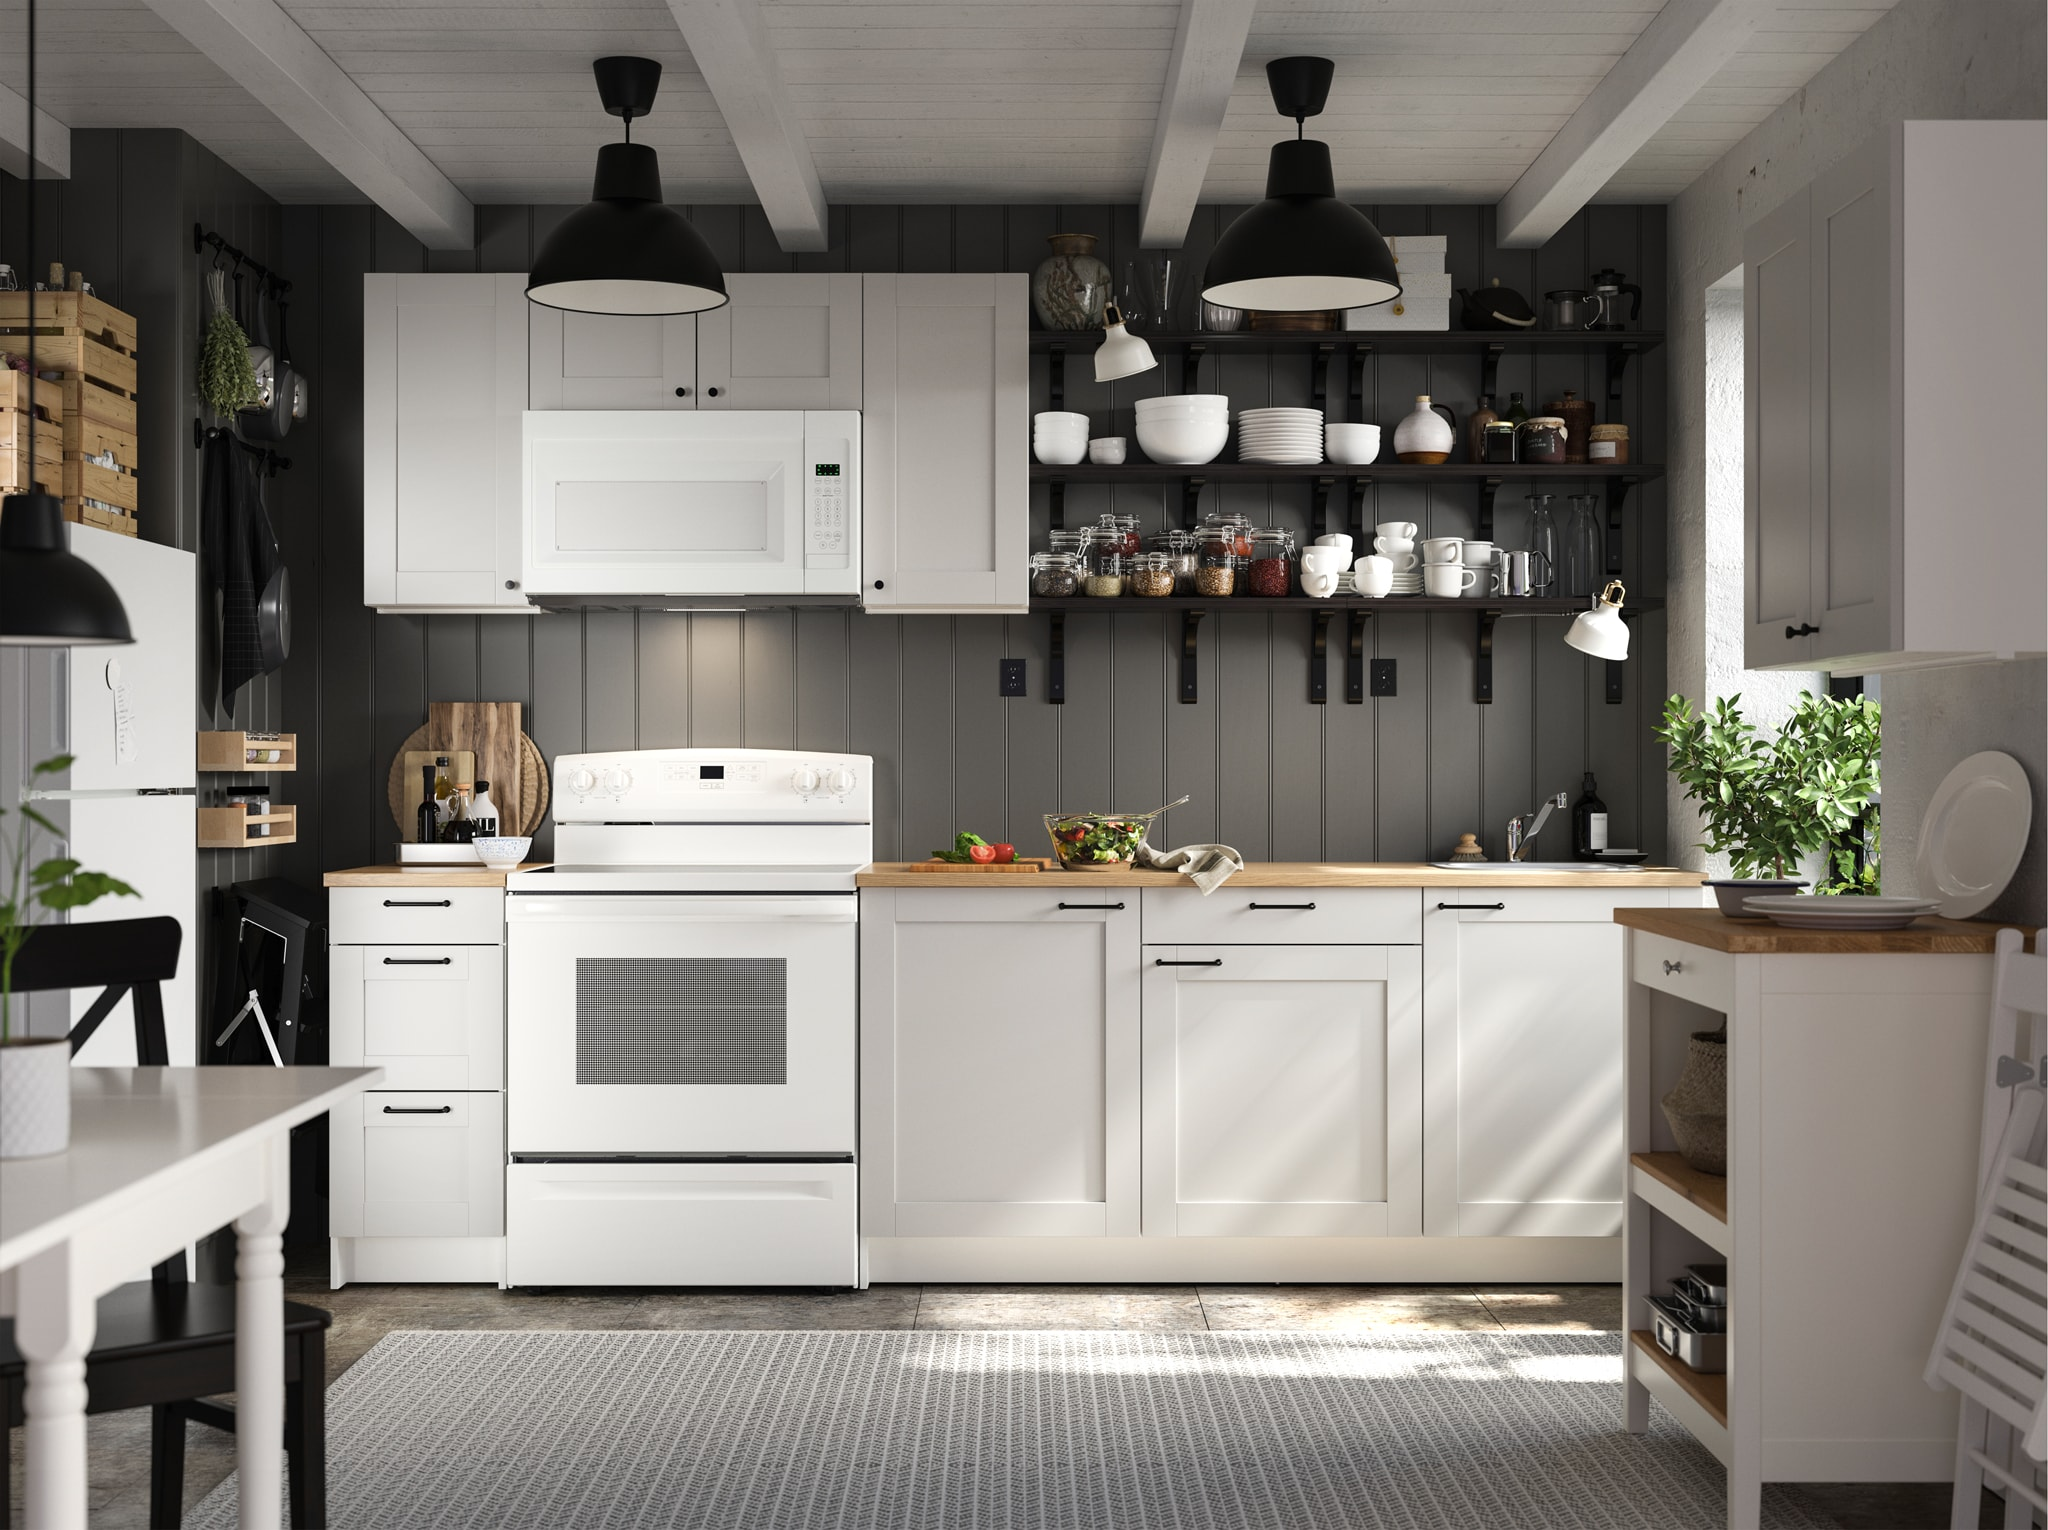 An affordable kitchen that truly reflects you